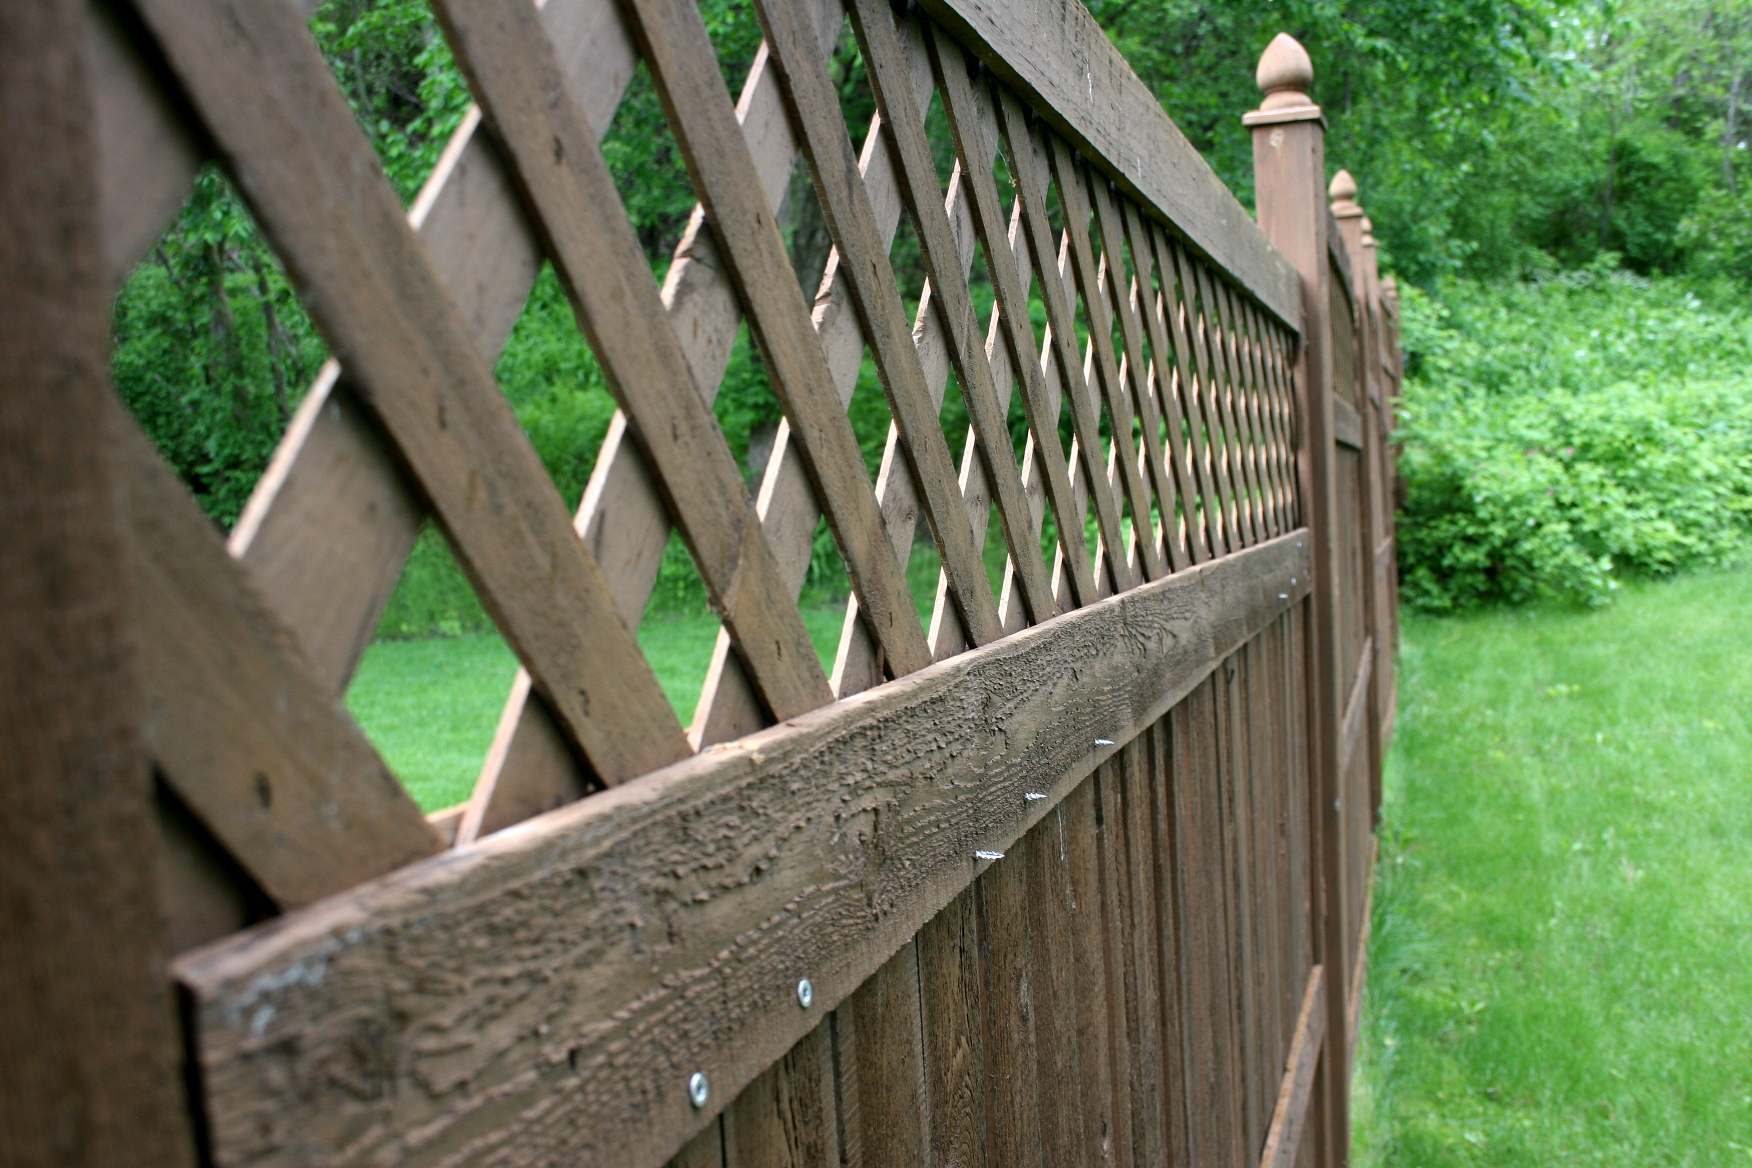 Marvelous photograph of Fence lattice with #4B8F3C color and 1752x1168 pixels